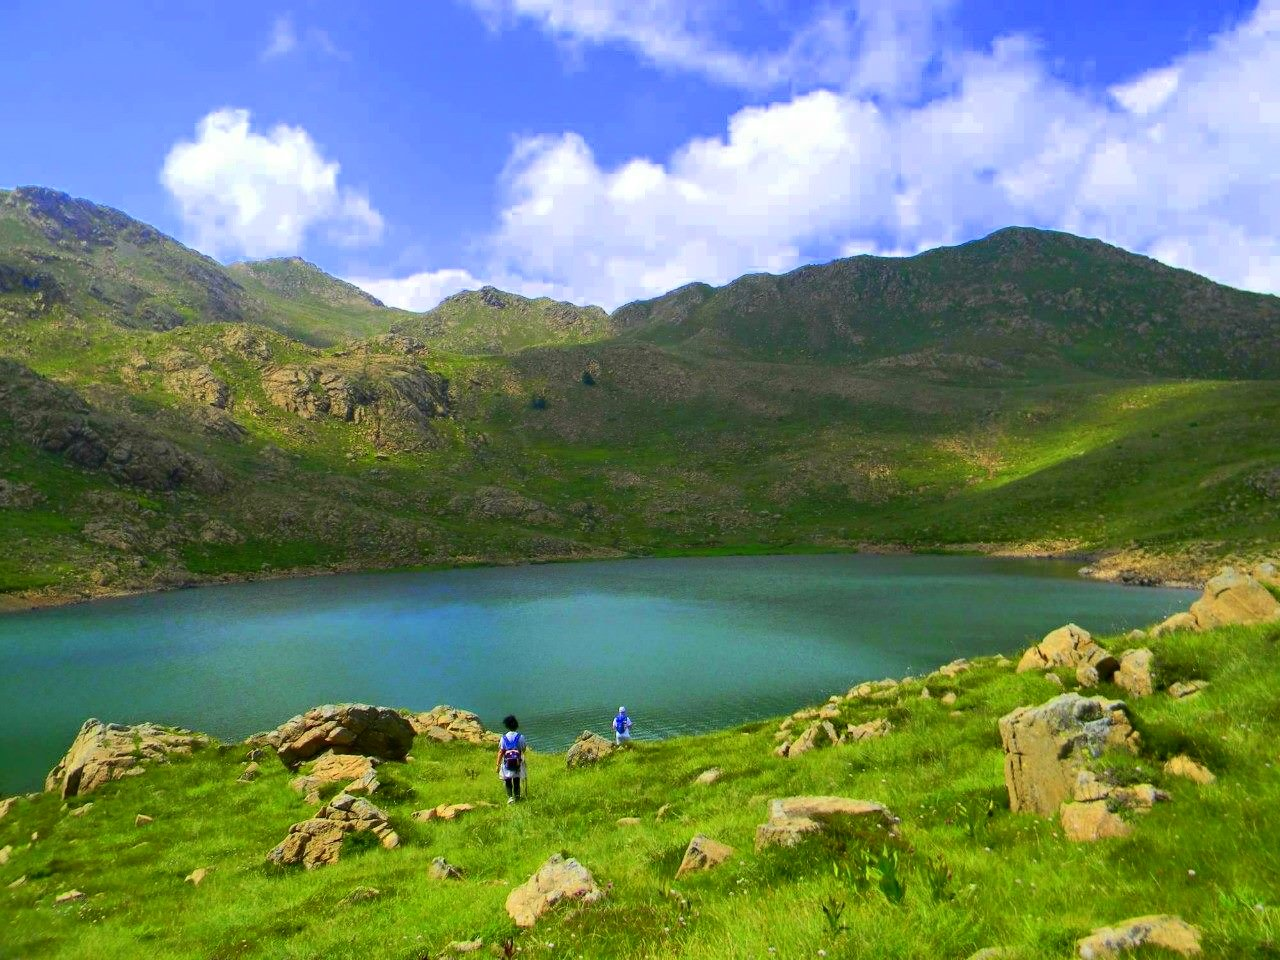 rrajce lake